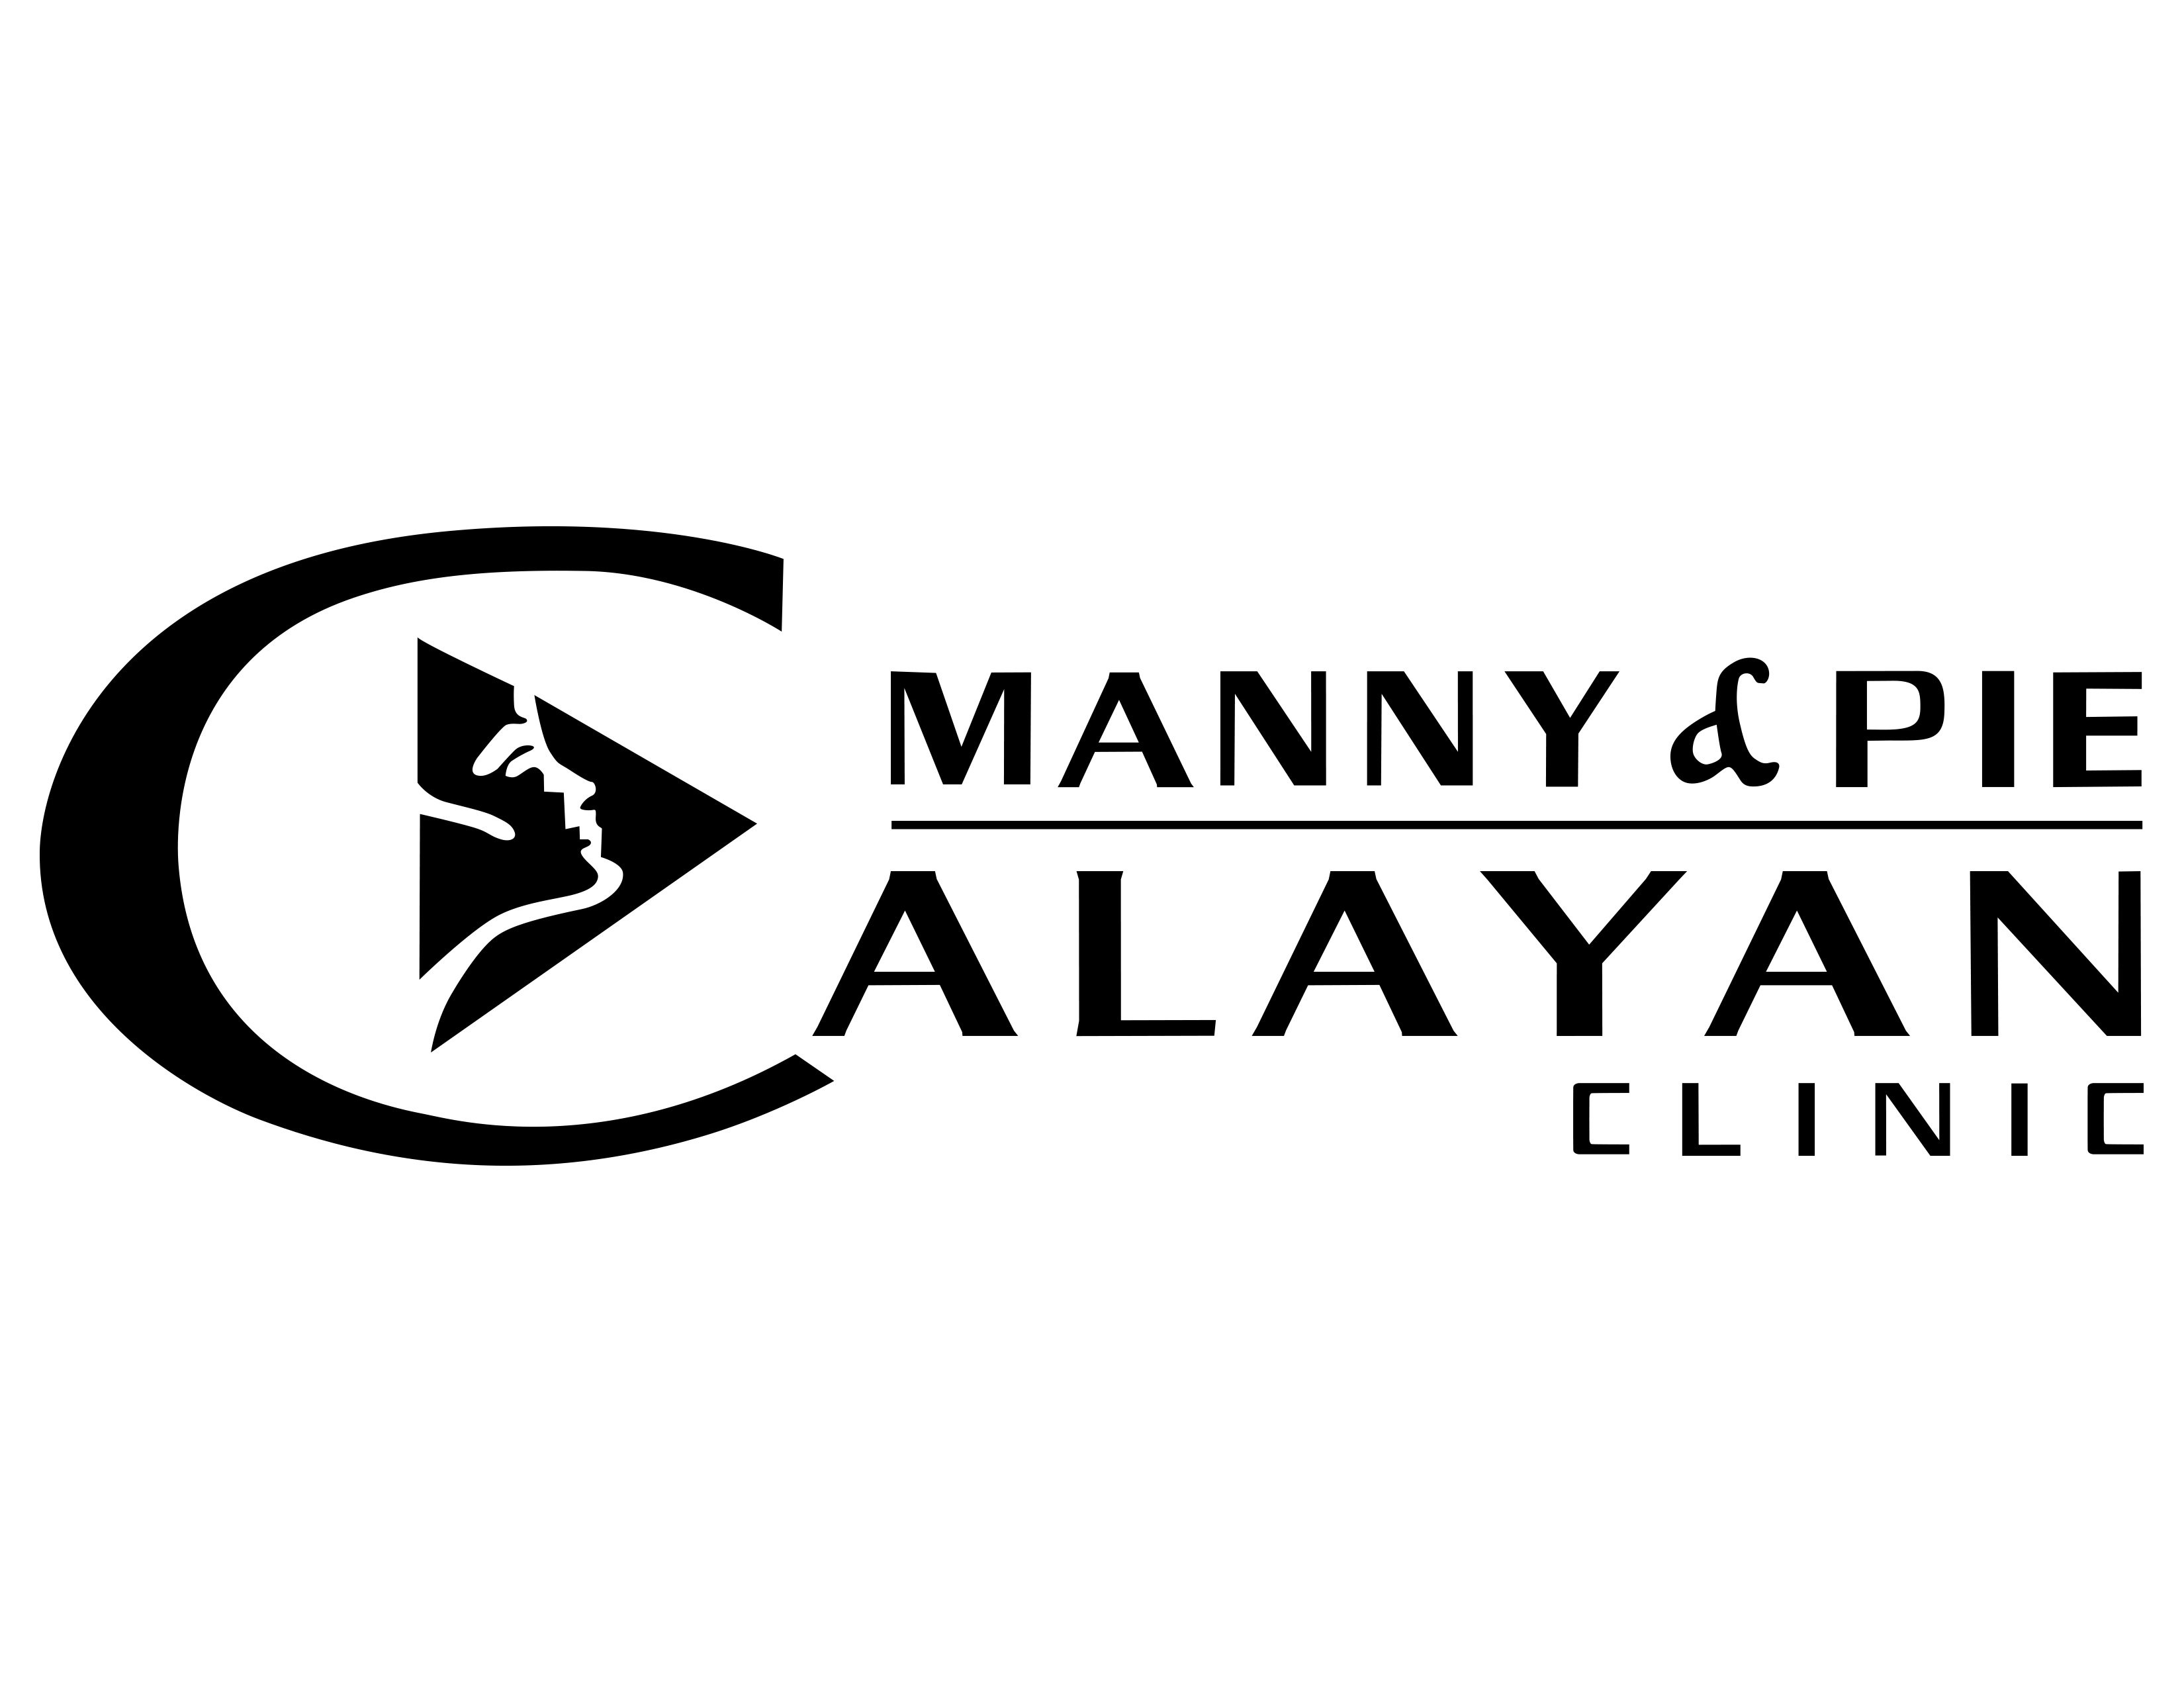 Manny and Pie Calayan Clinic